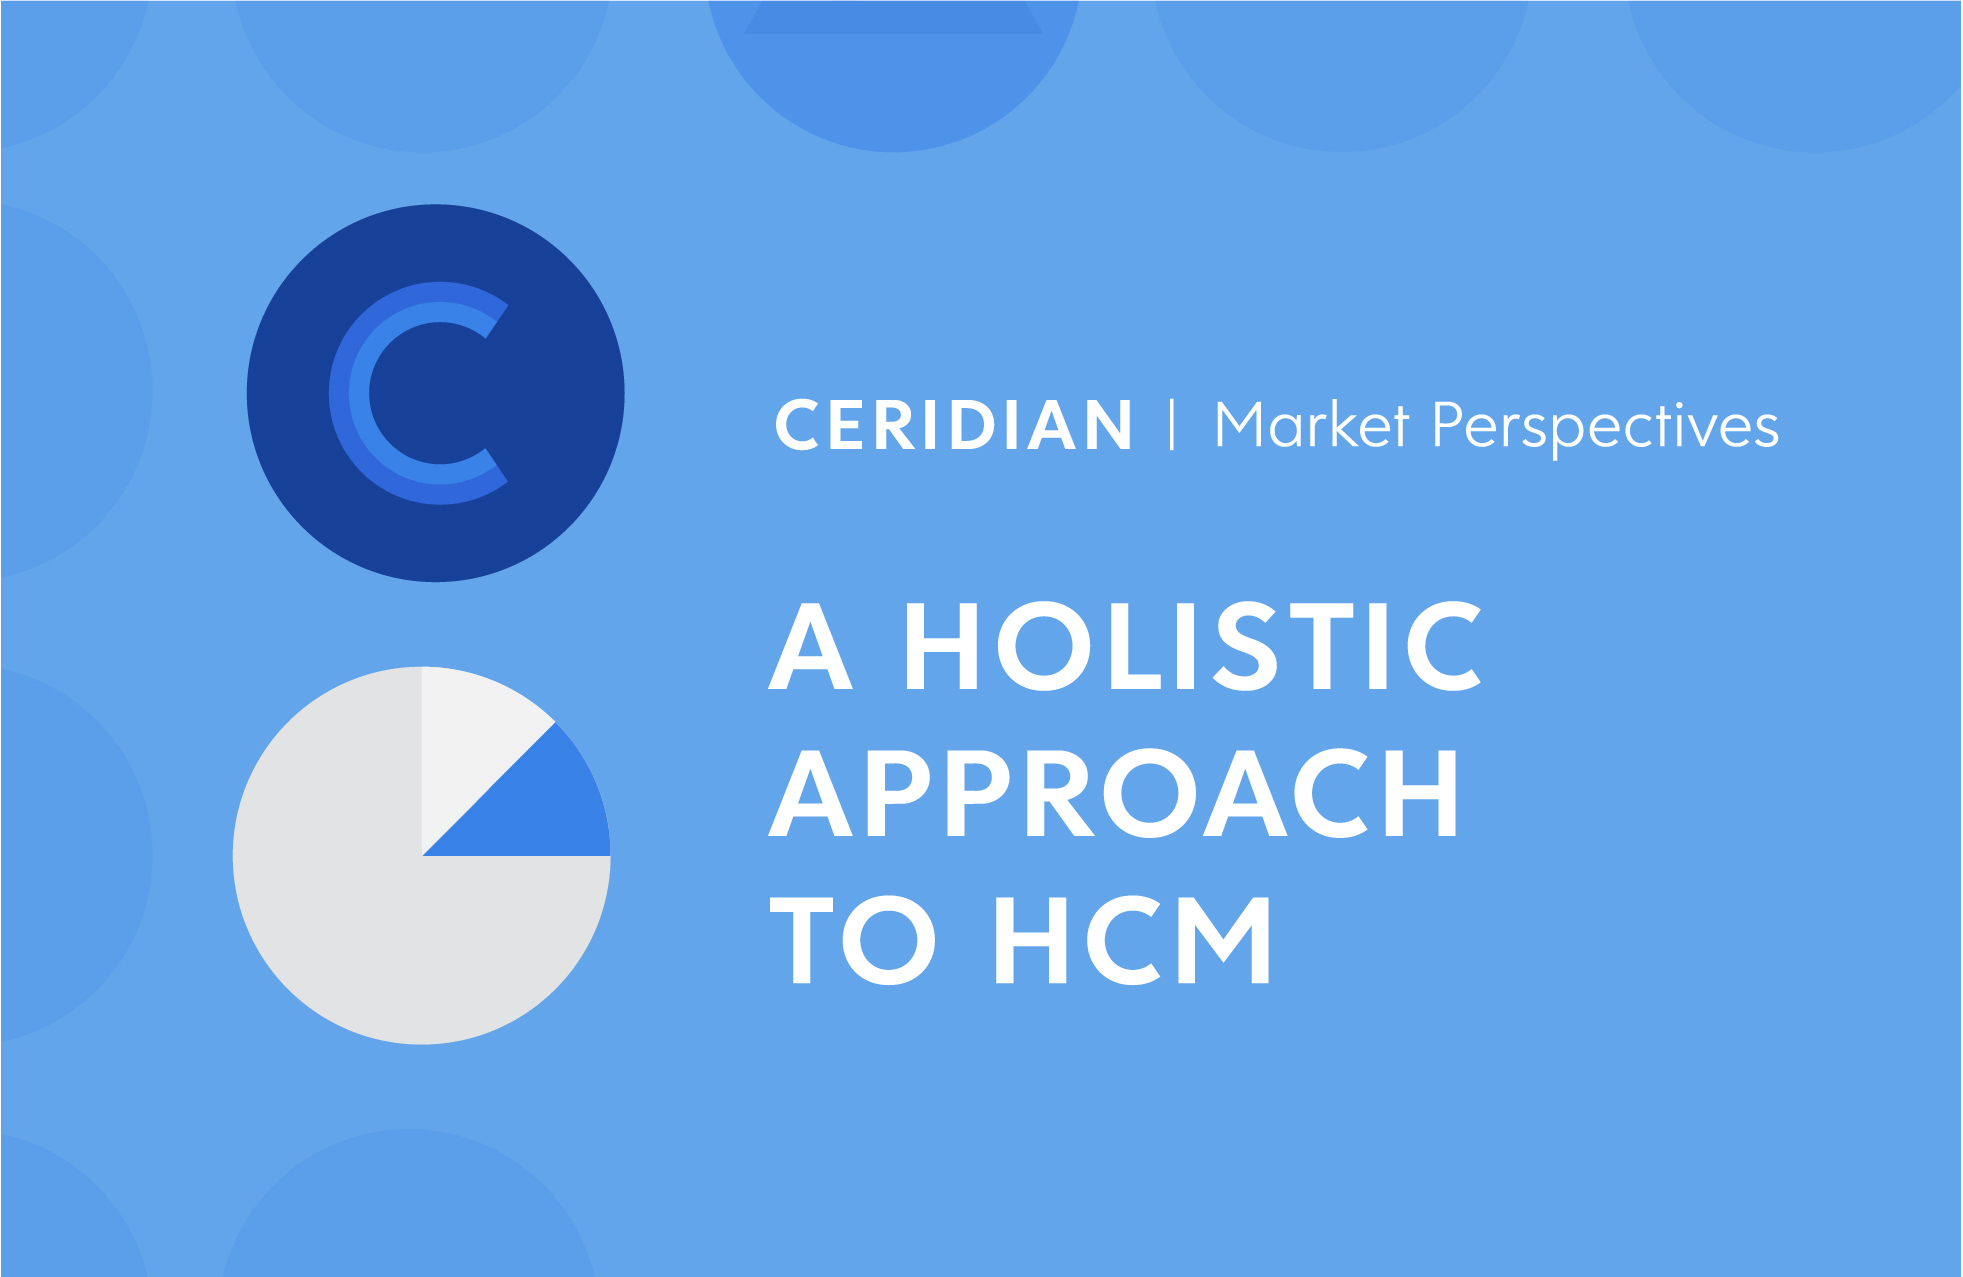 HCM Trends - A holistic approach to HCM - teaser image